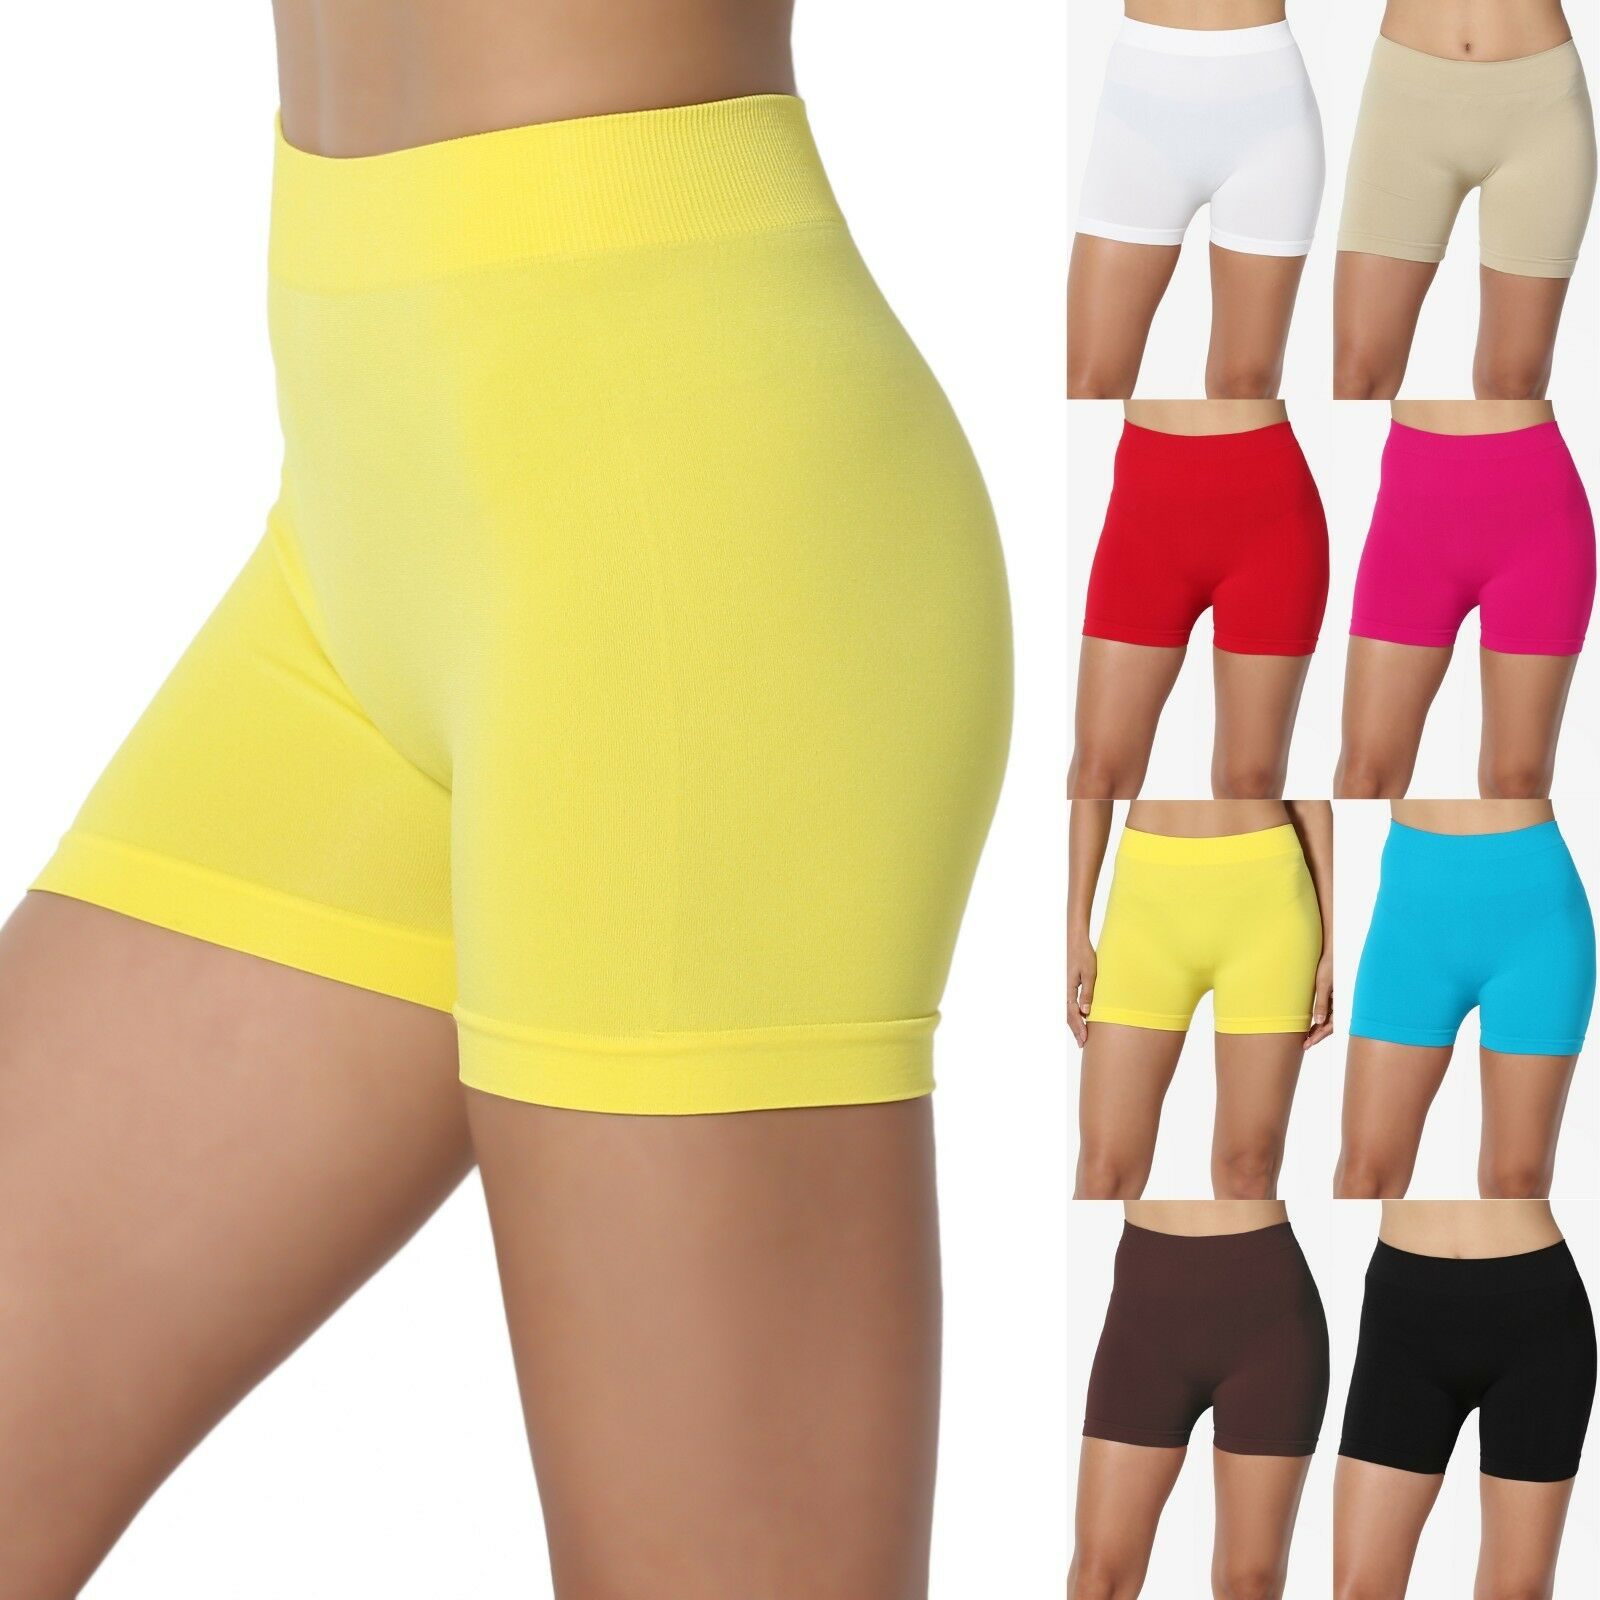 TheMogan Basic Stretch Bike Mini Boy Short Leggings Seamless